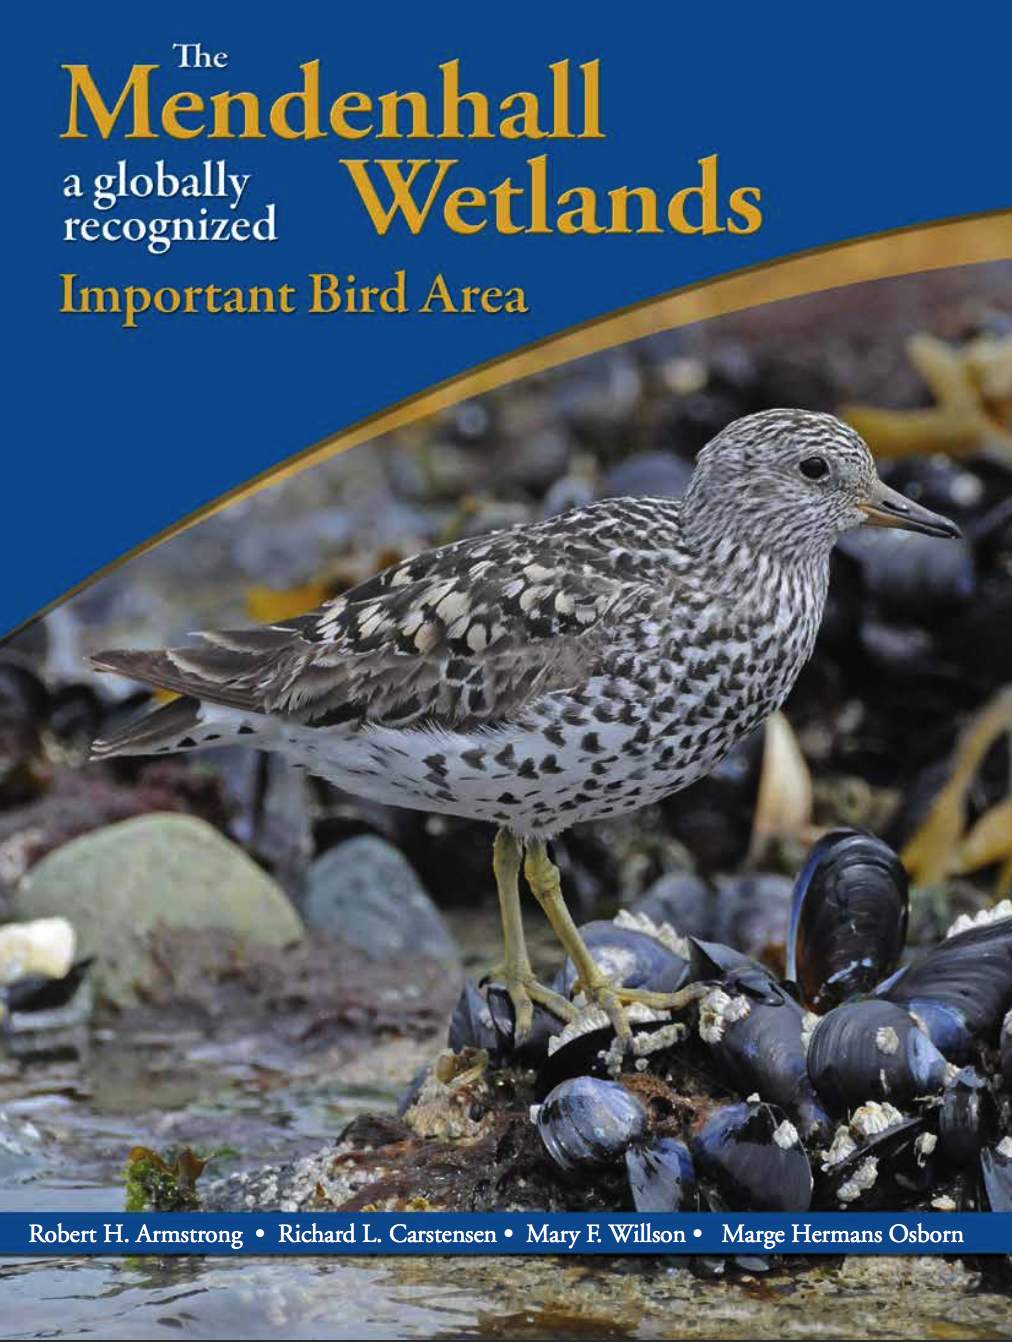 WANT TO KNOW MORE ABOUT THE MENDENHALL WETLANDS AND THE IMPORTANT BIRD AREA?